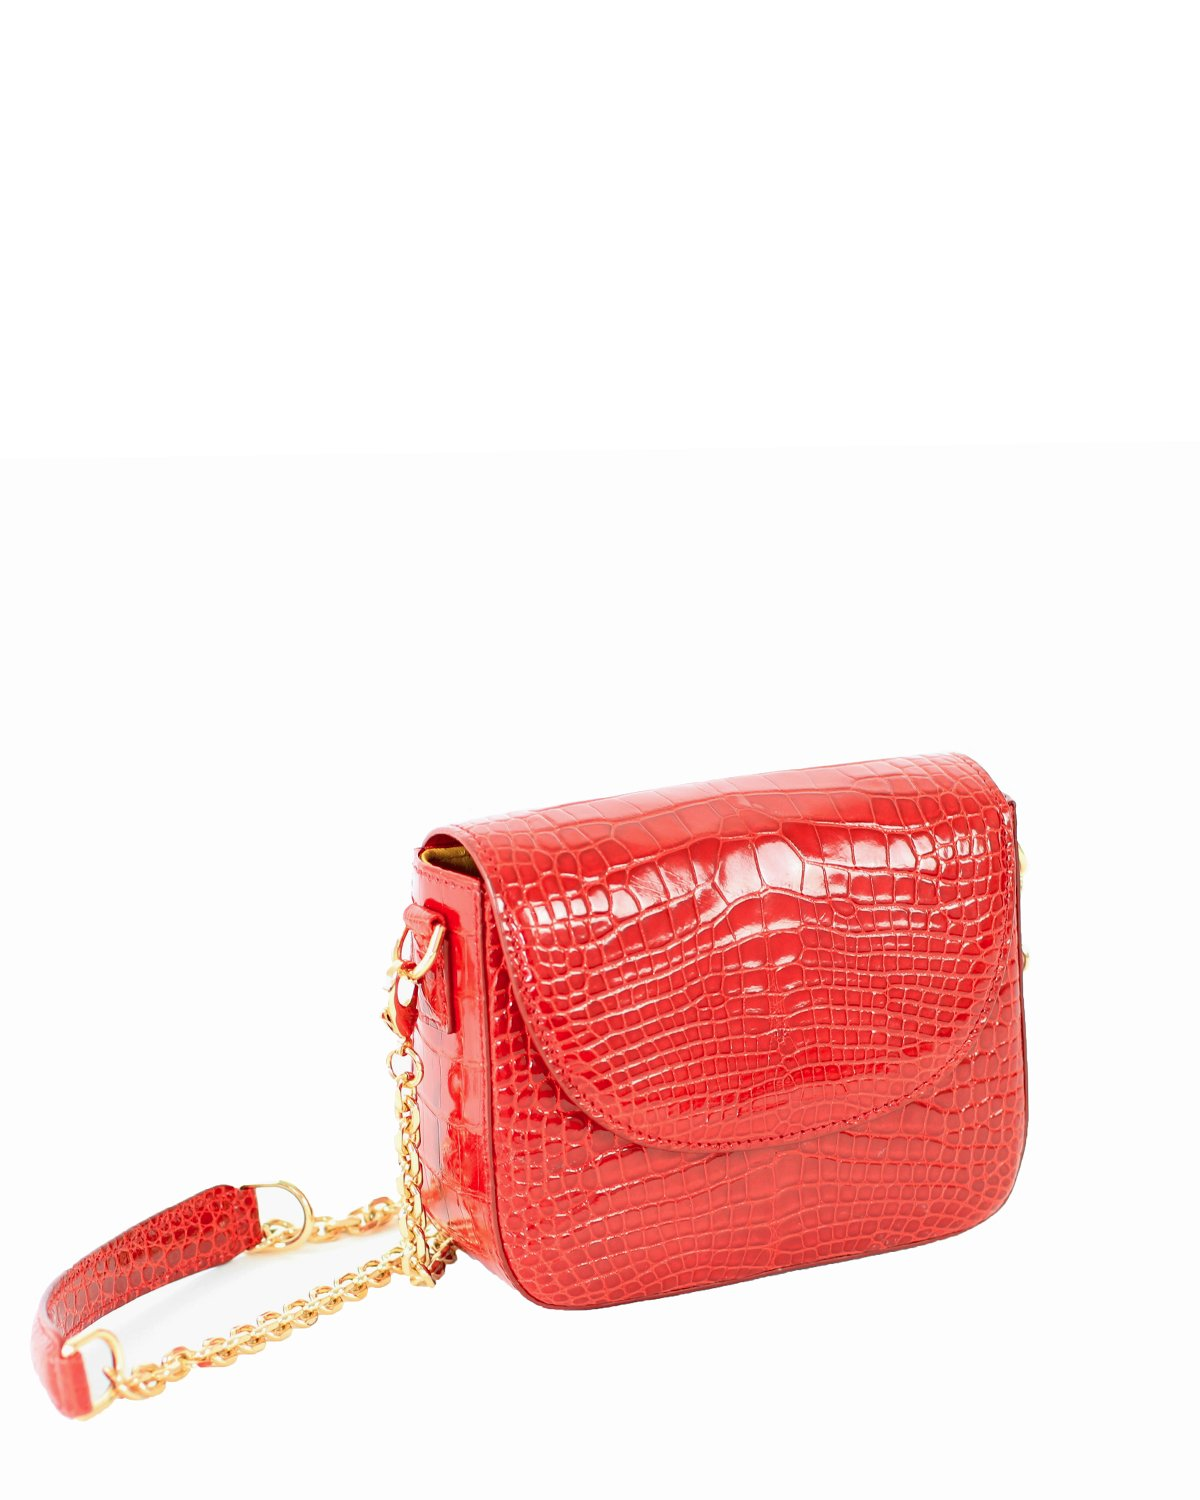 Genuine American Alligator Crocodile Crossbody Classic Shiny Red Yara Bashoor Angle View